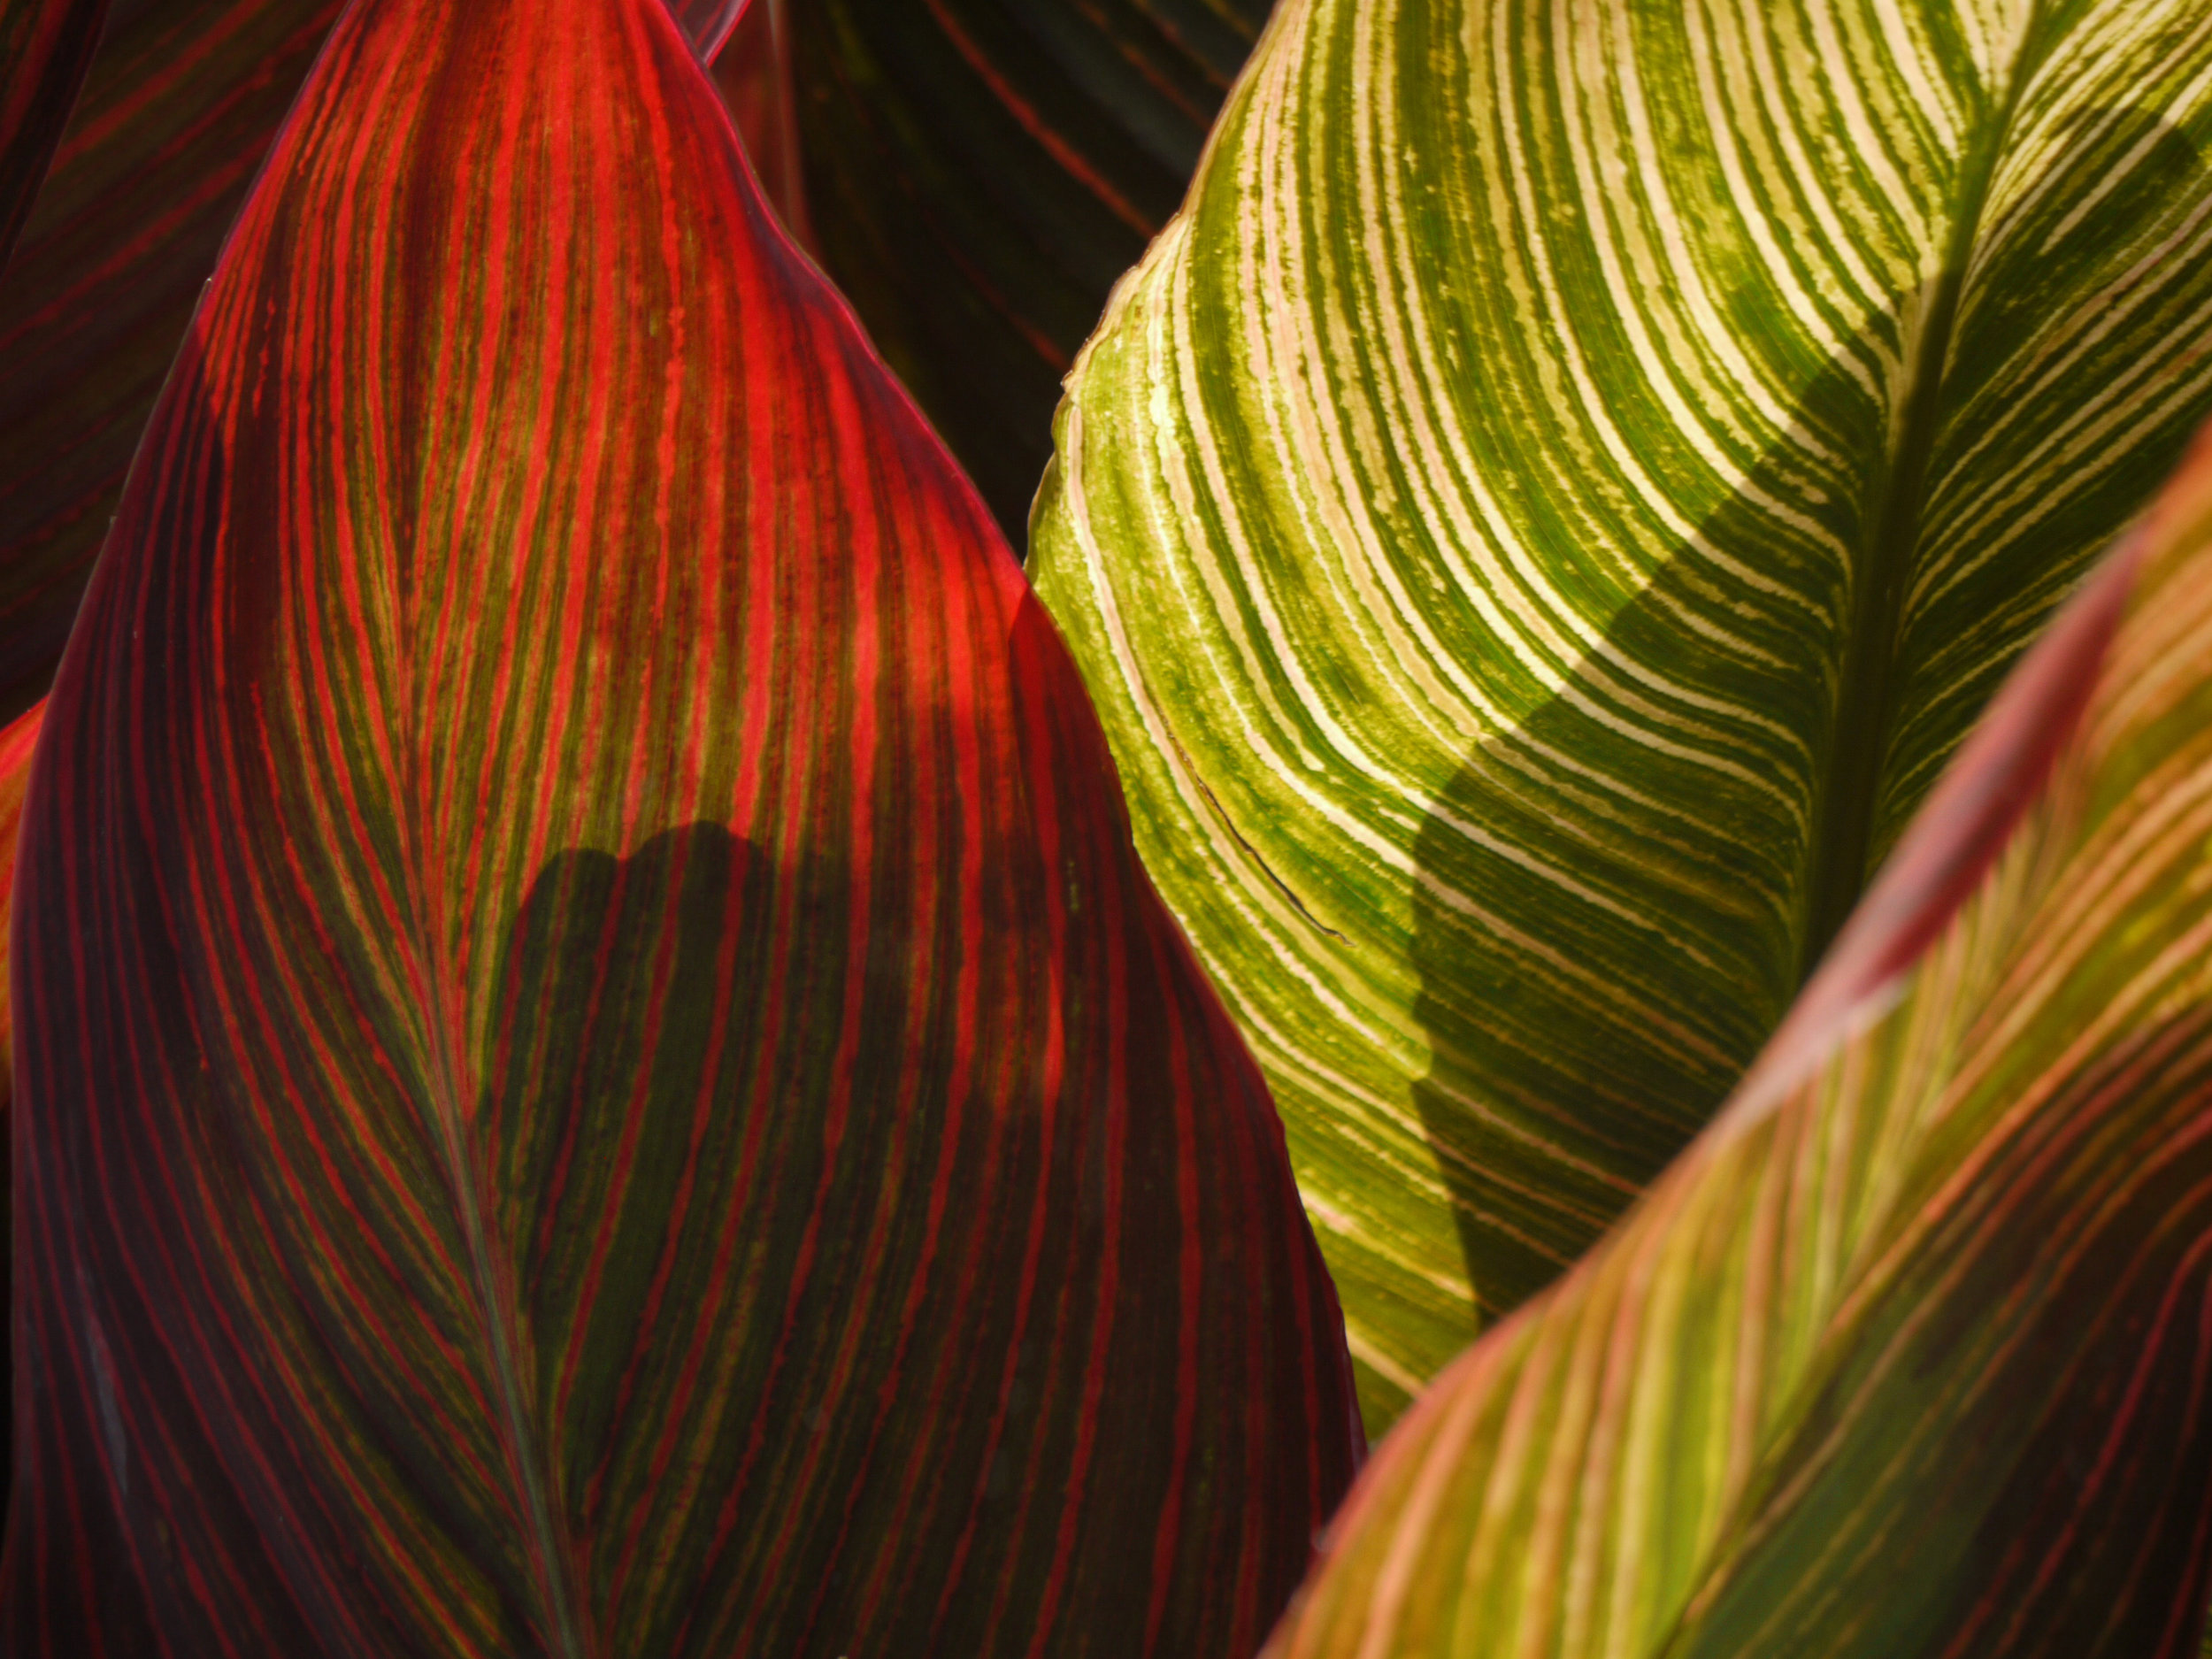 Red and Green Leaves.jpg